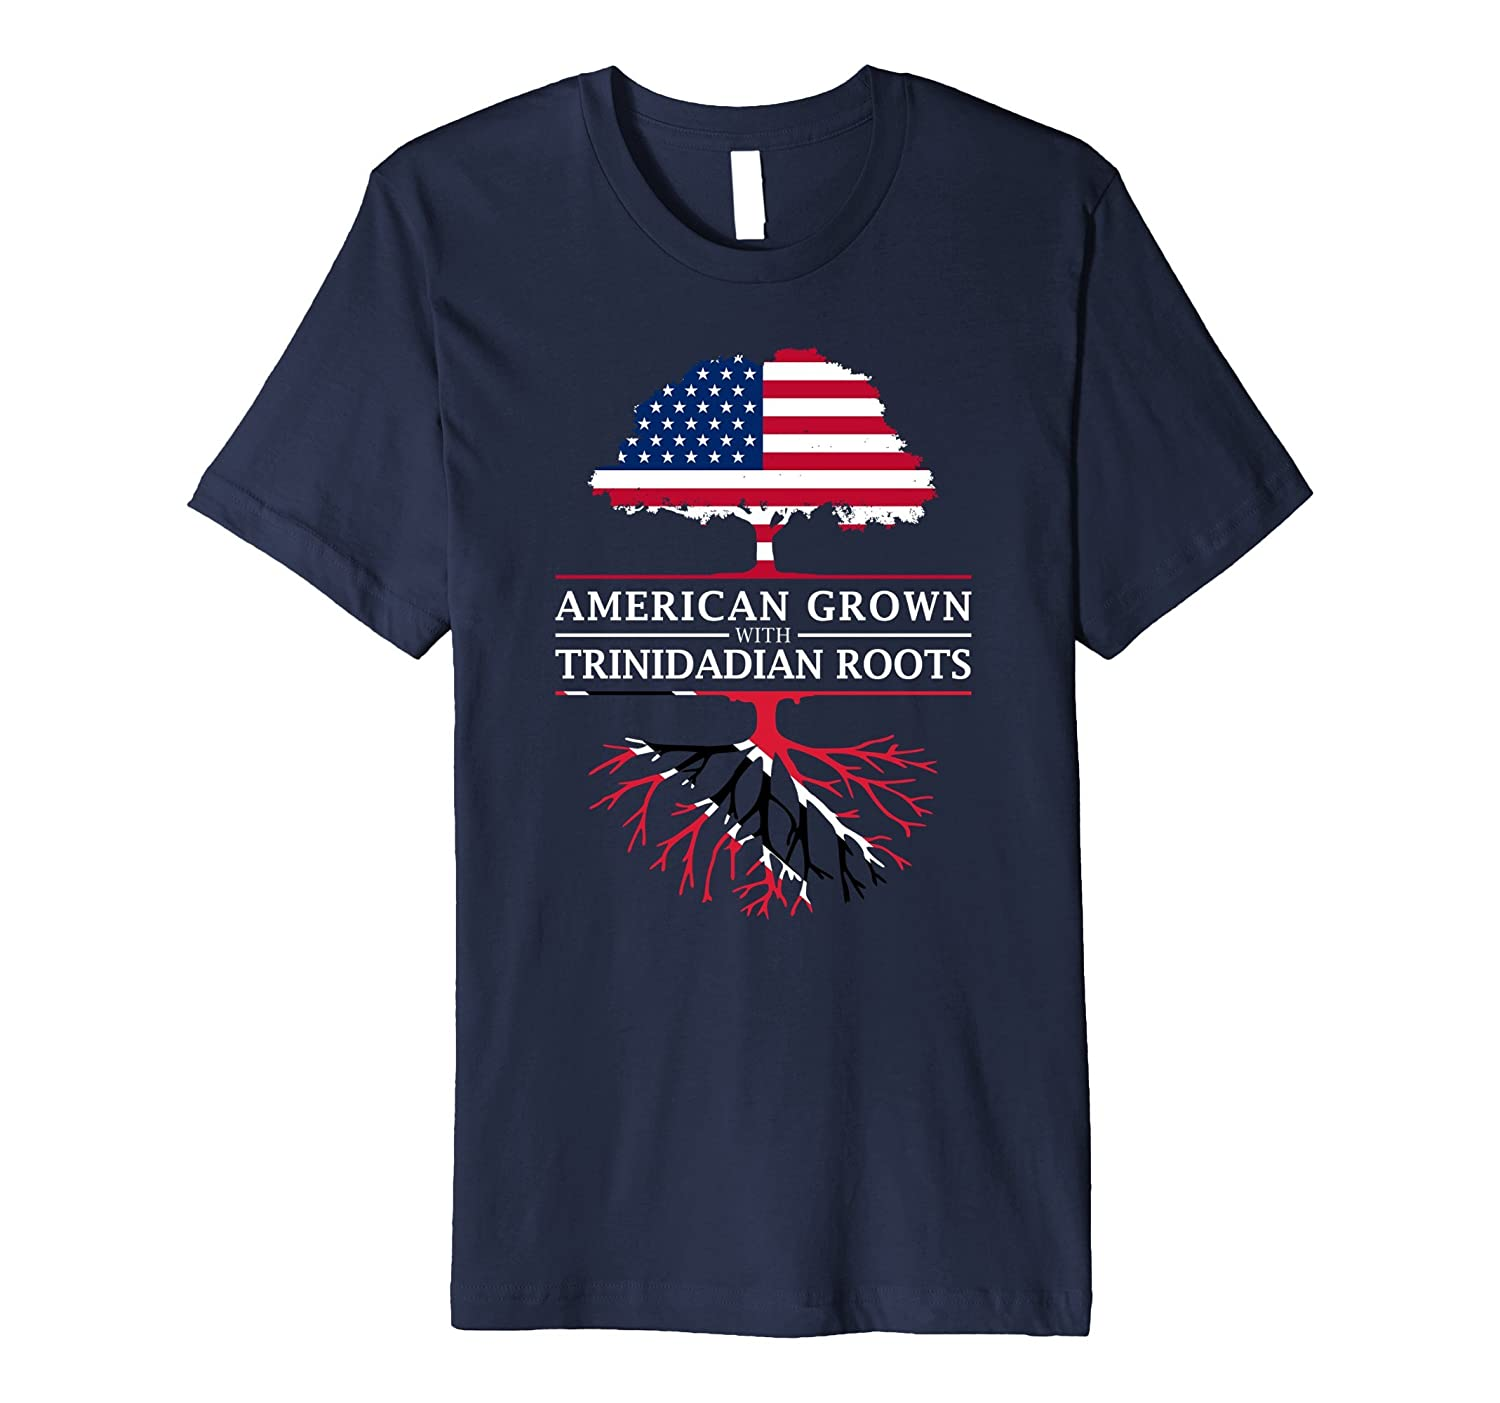 American Grown with Trinidadian Roots - Trinidad T-Shirt-TH